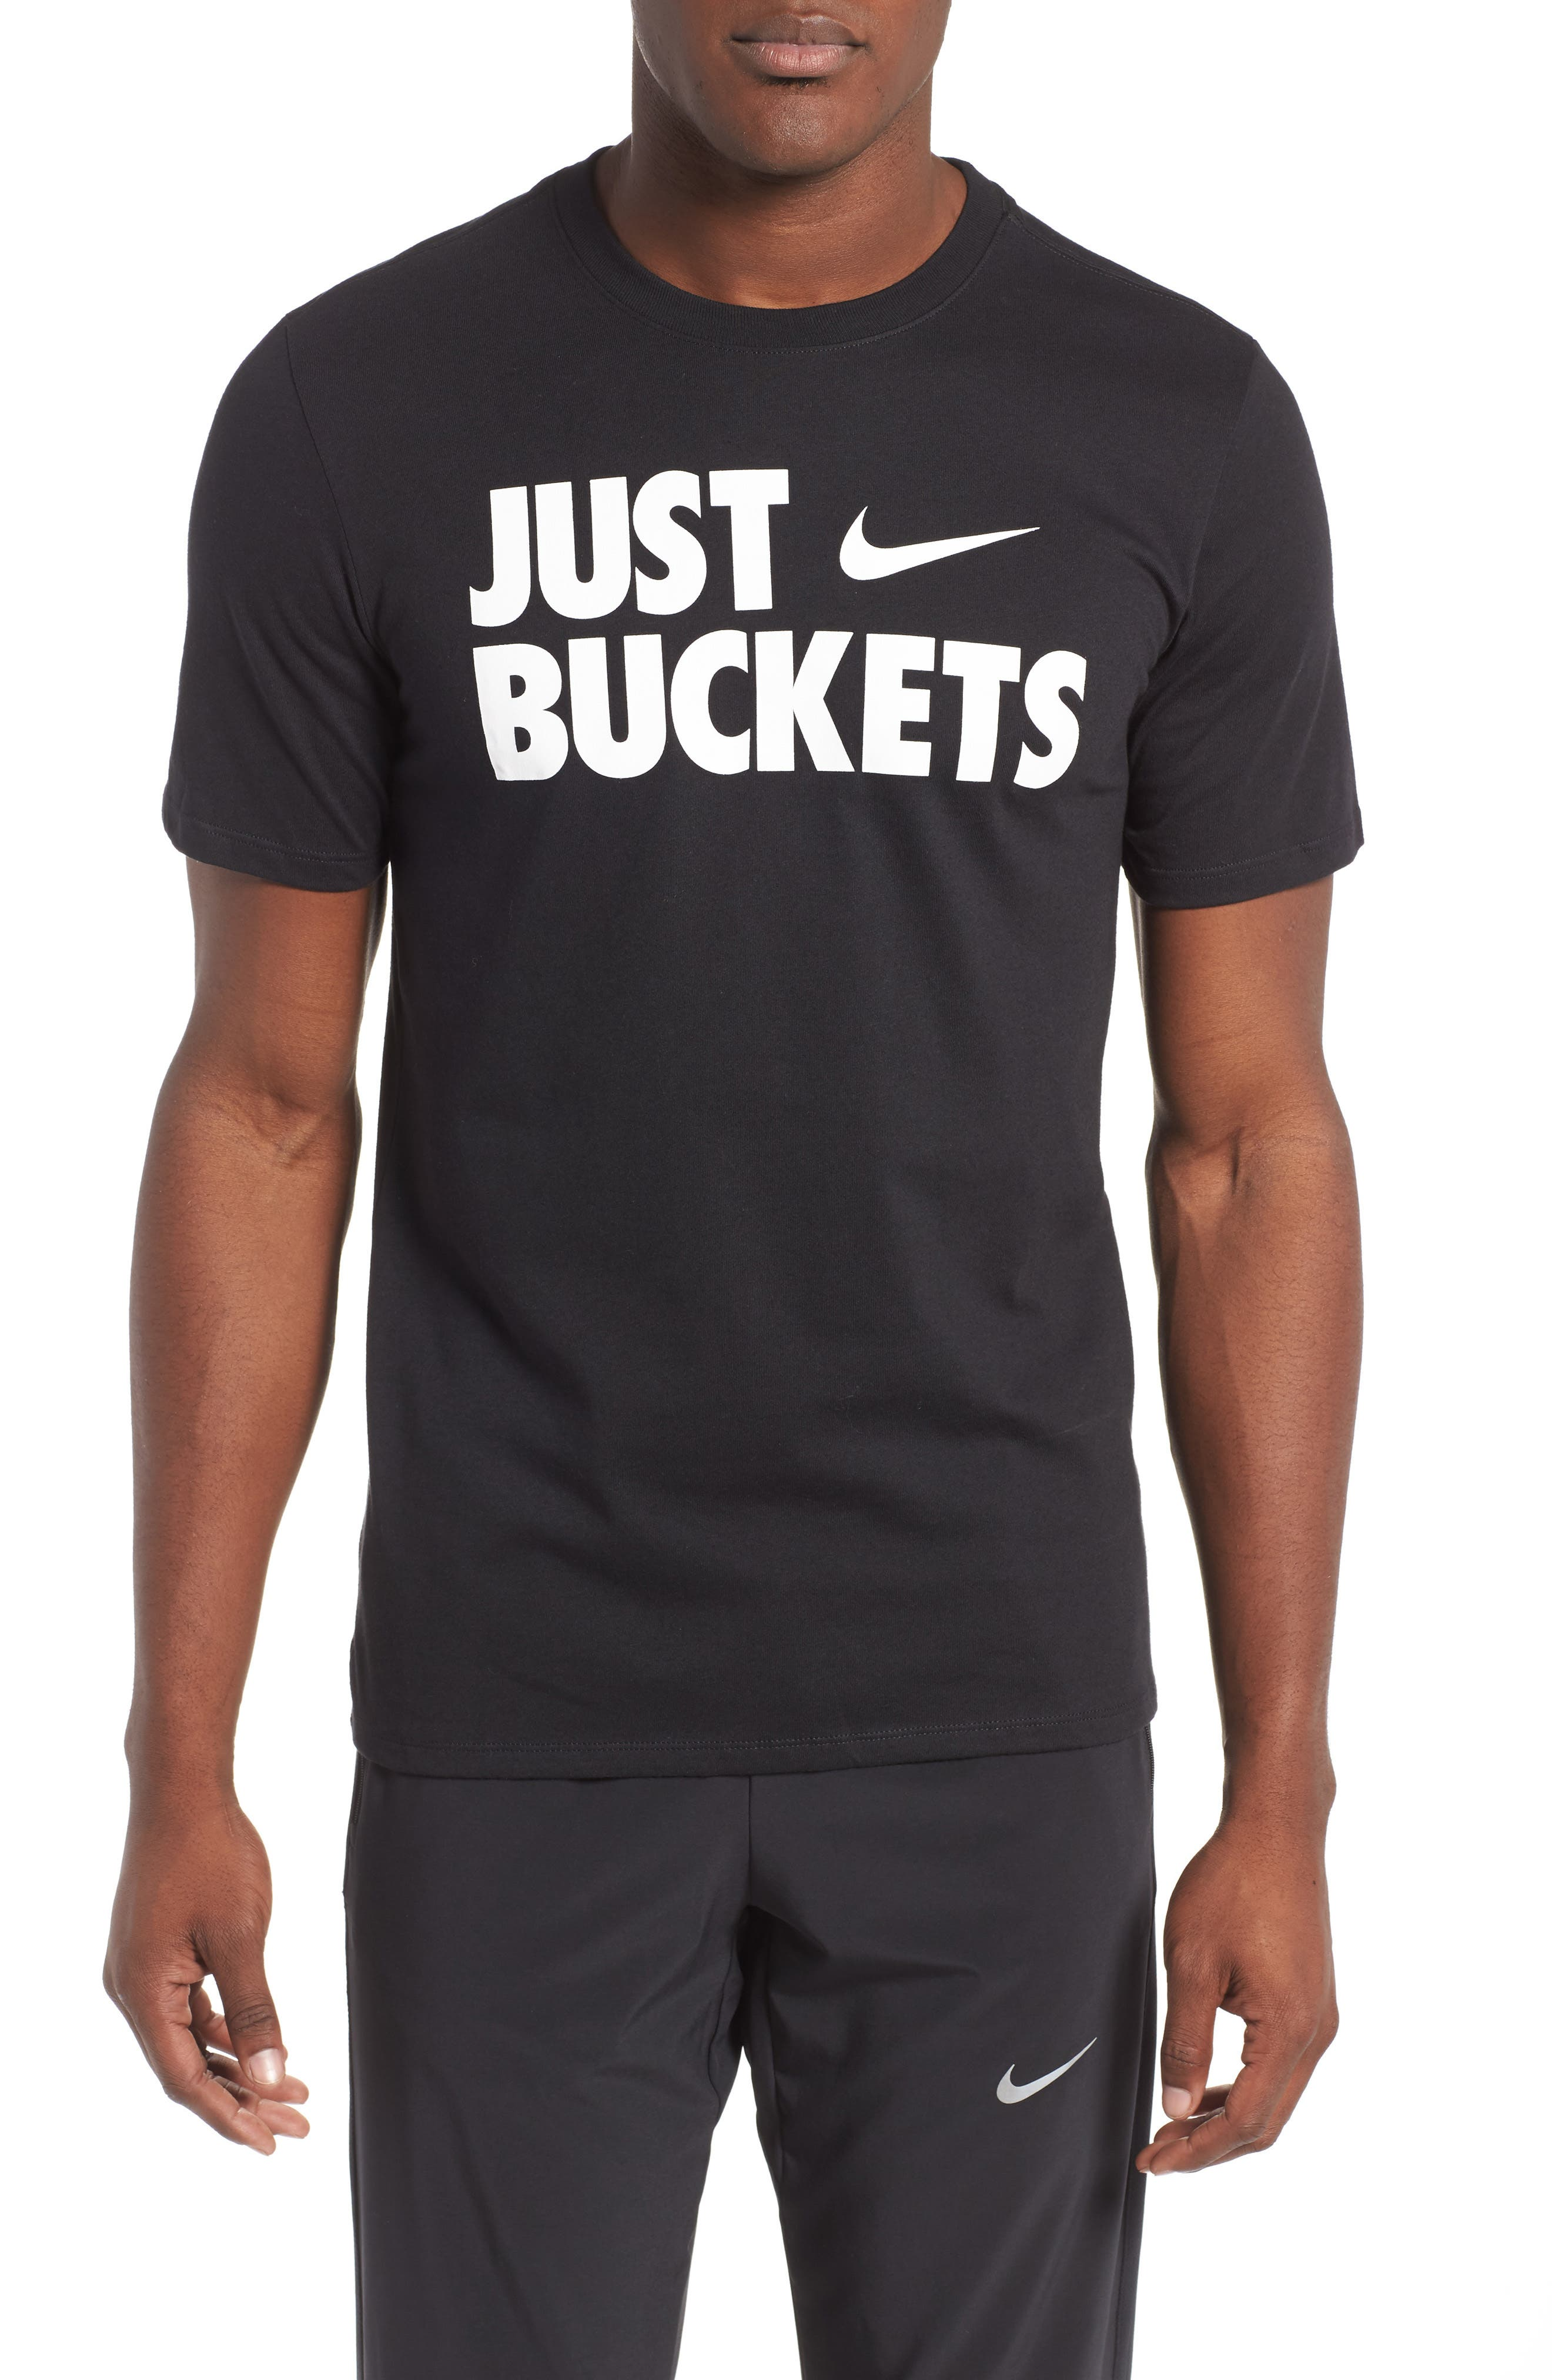 Just Buckets T-Shirt, Main, color, 010